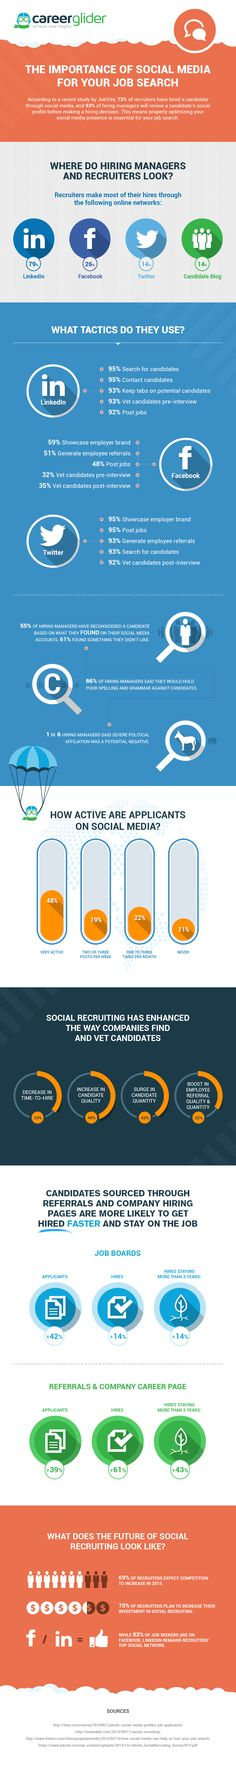 Infographic: How Important is Social Media for Your Job Search